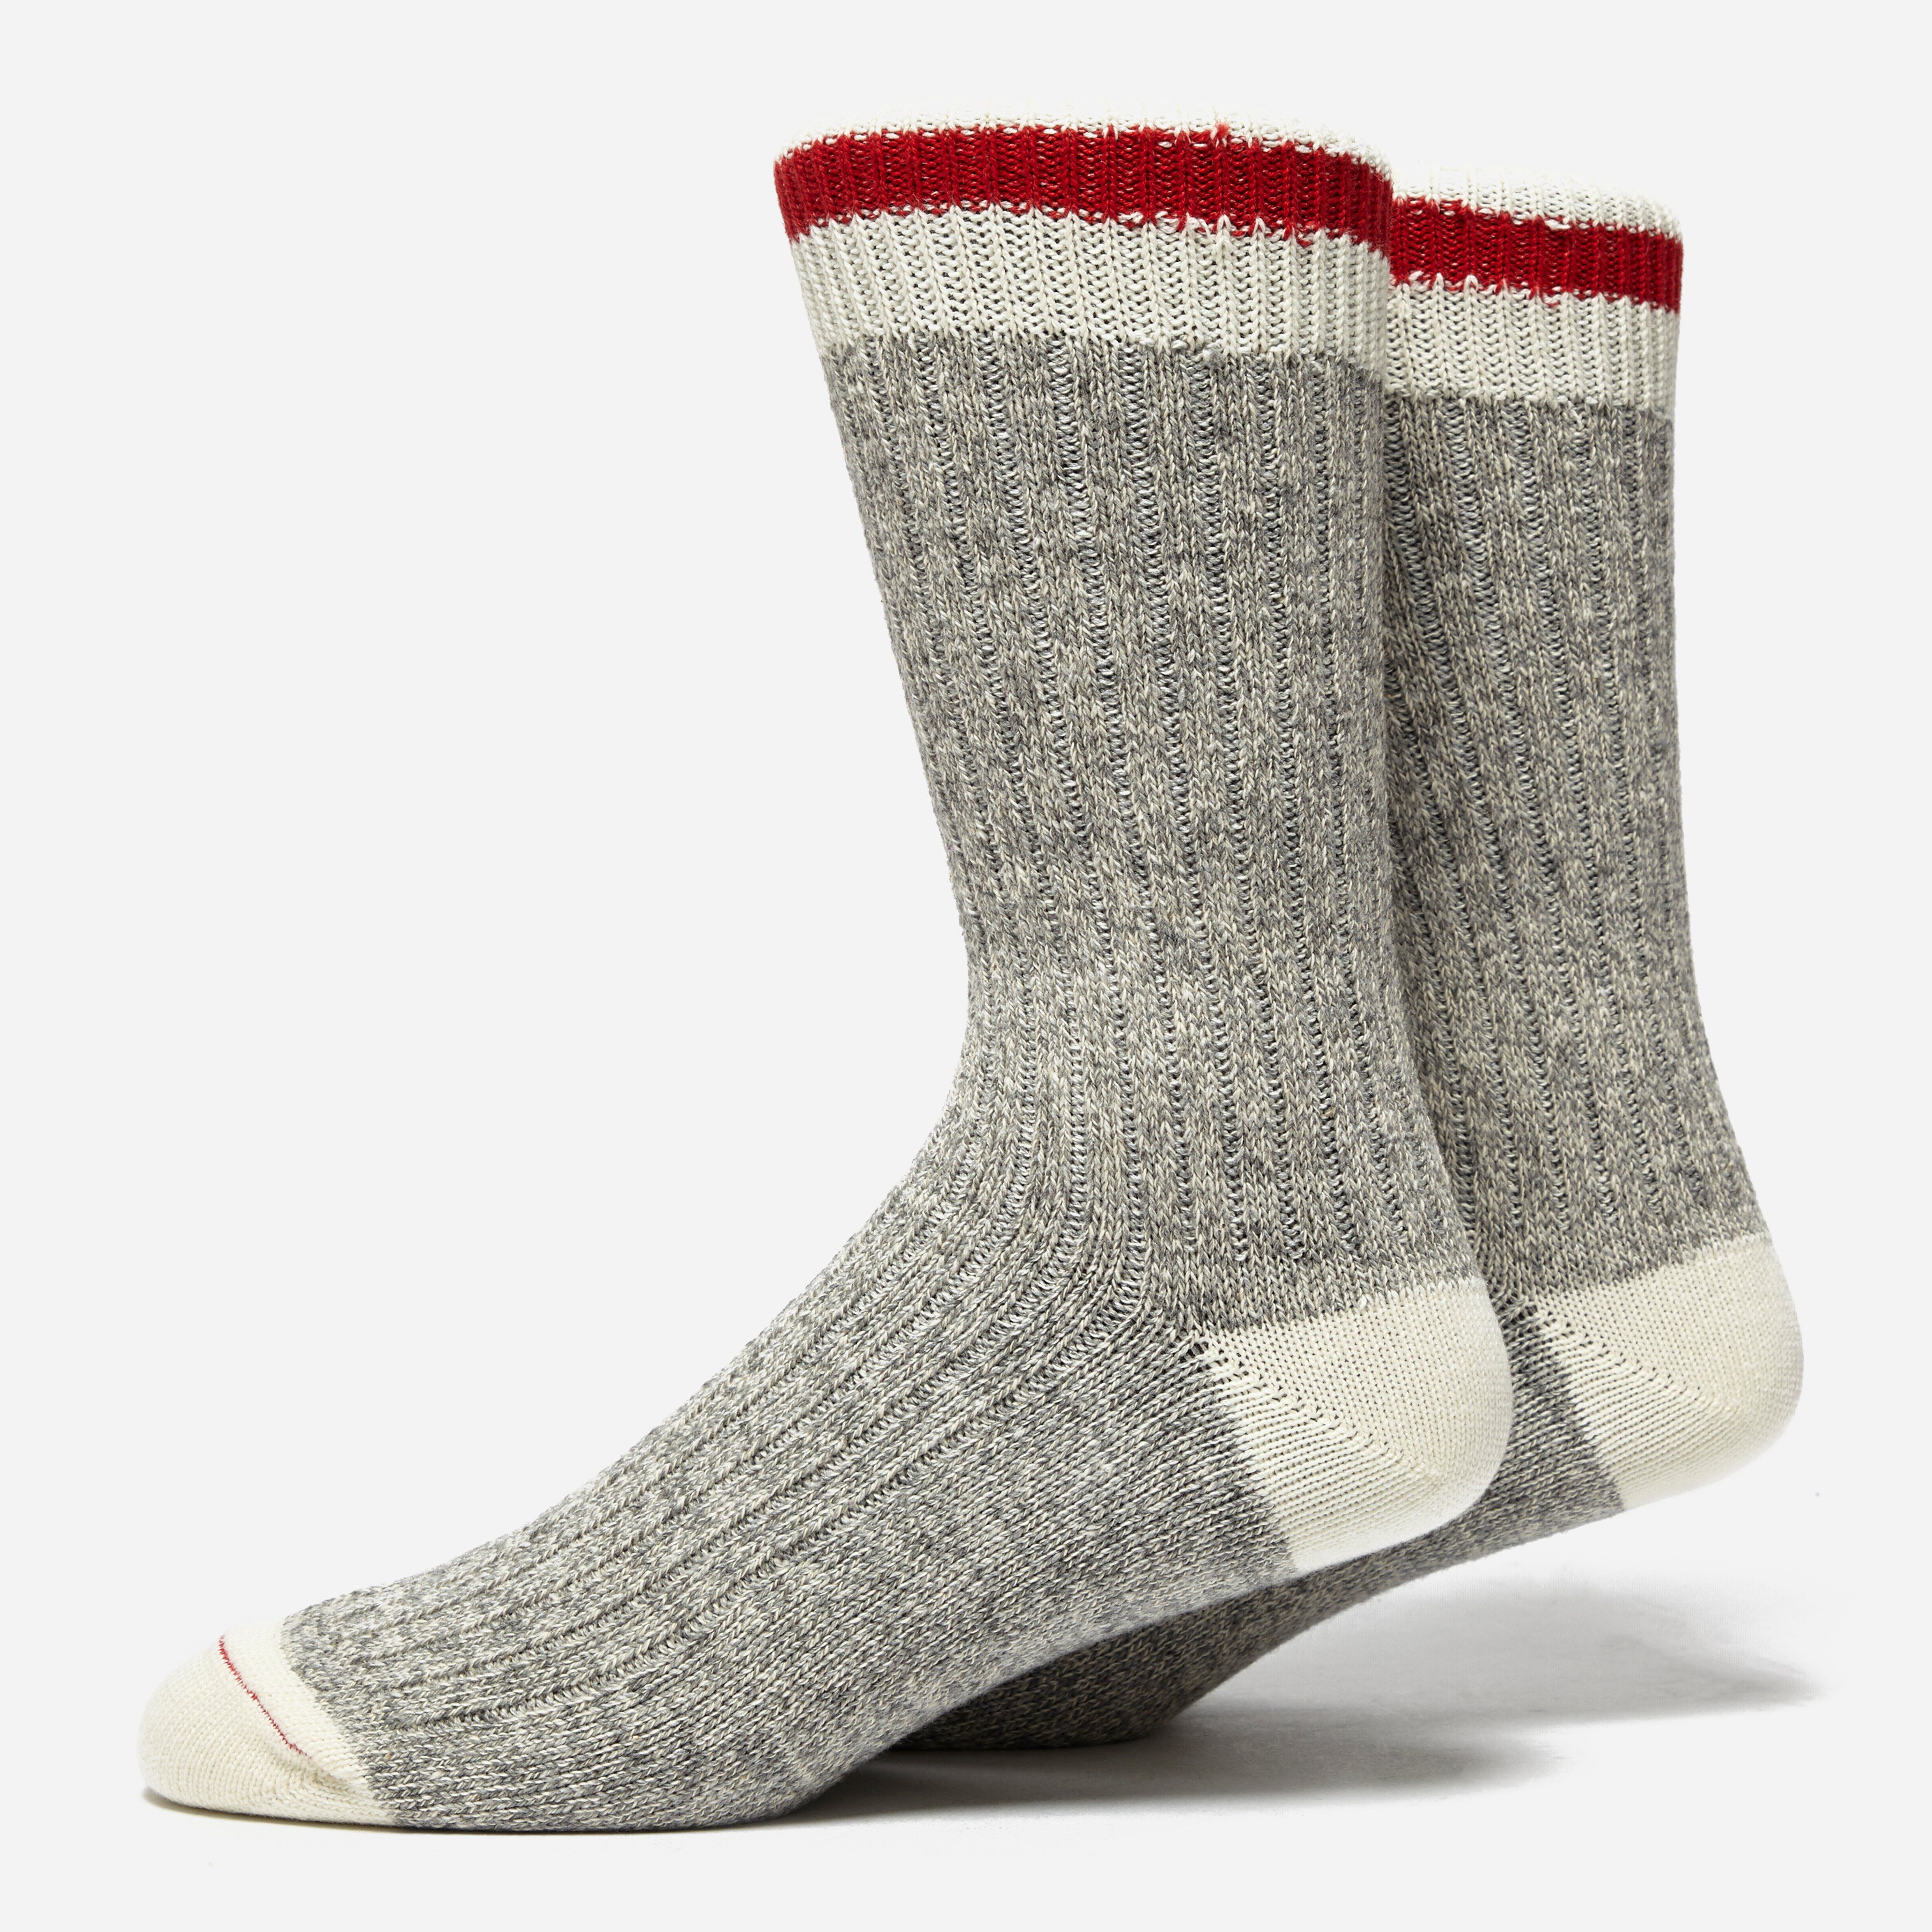 Beams Plus Ragg Socks